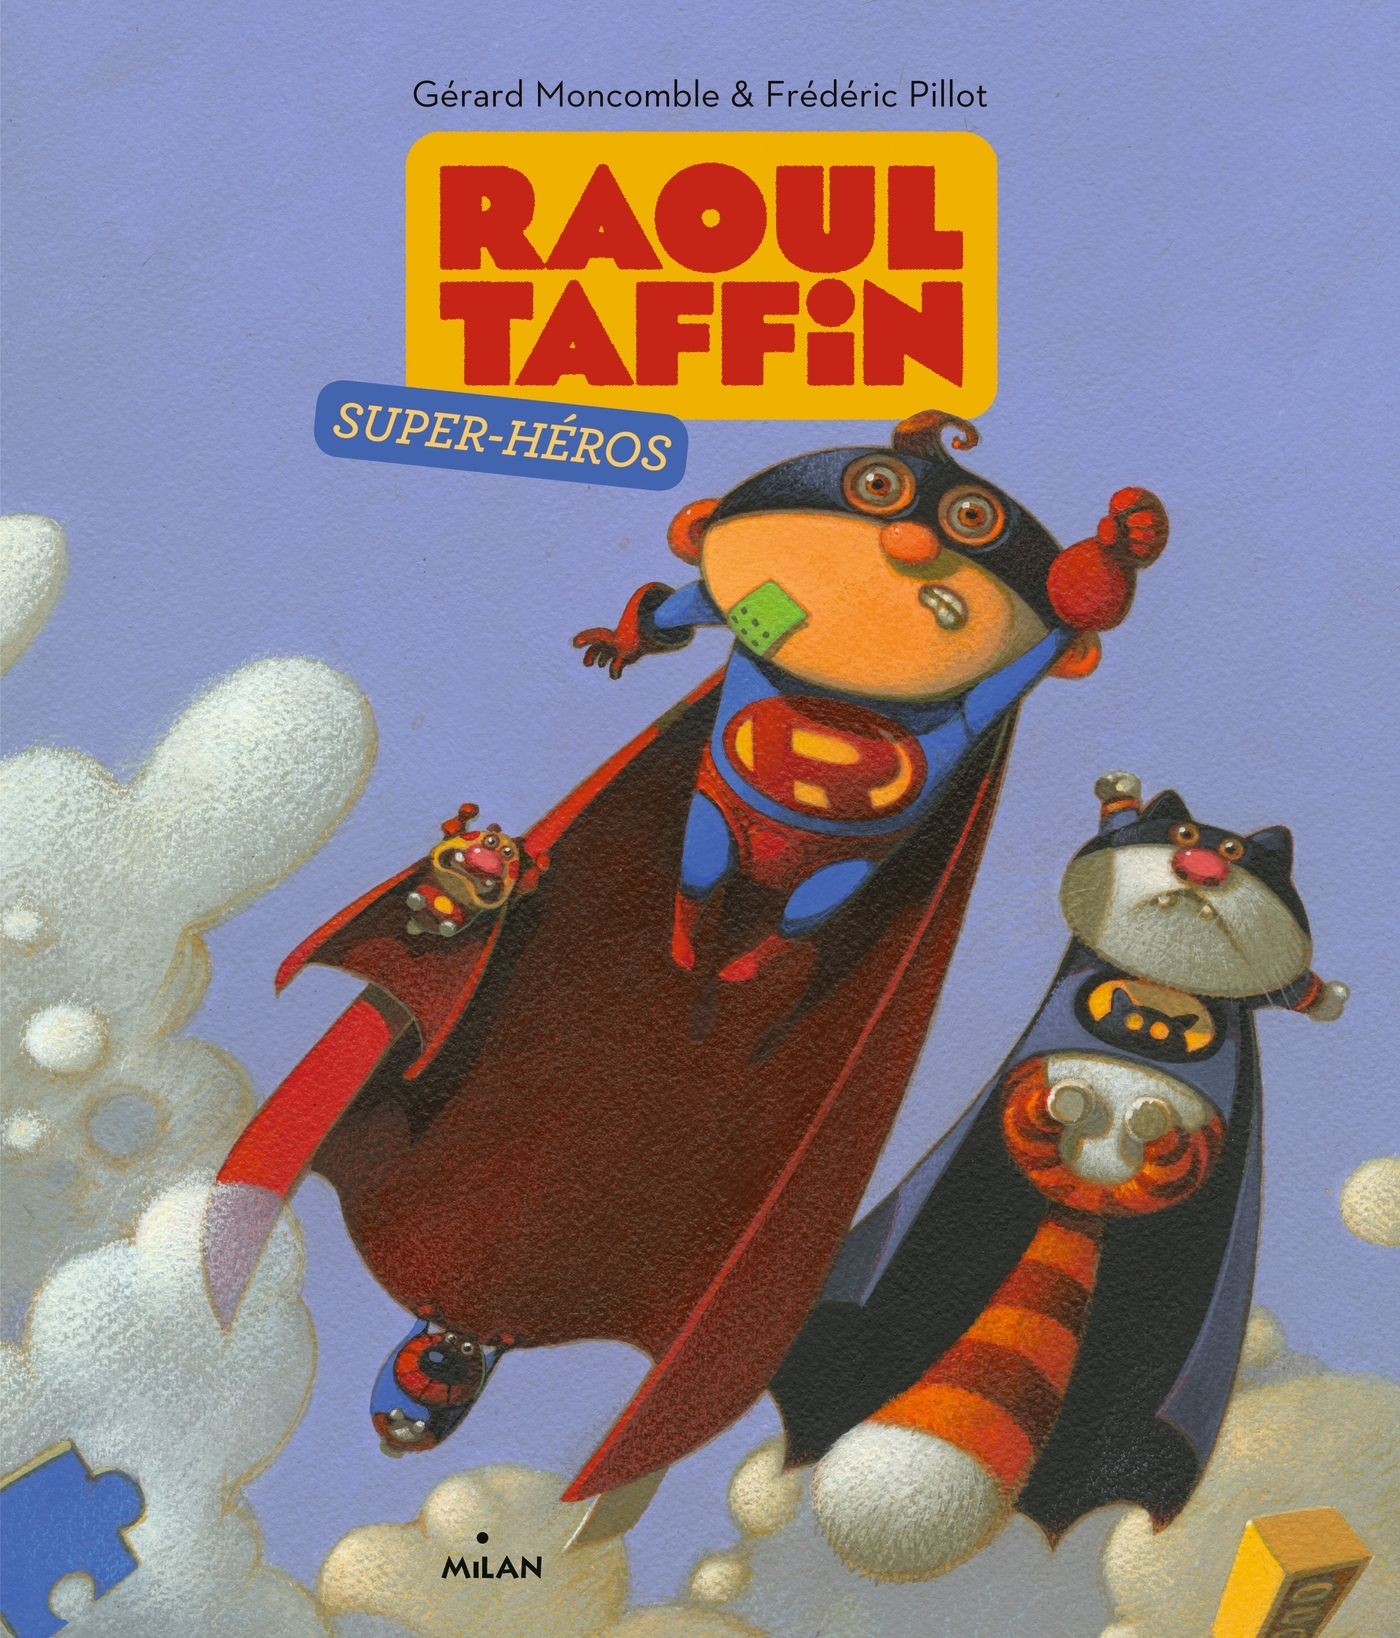 RAOUL TAFFIN SUPER-HEROS